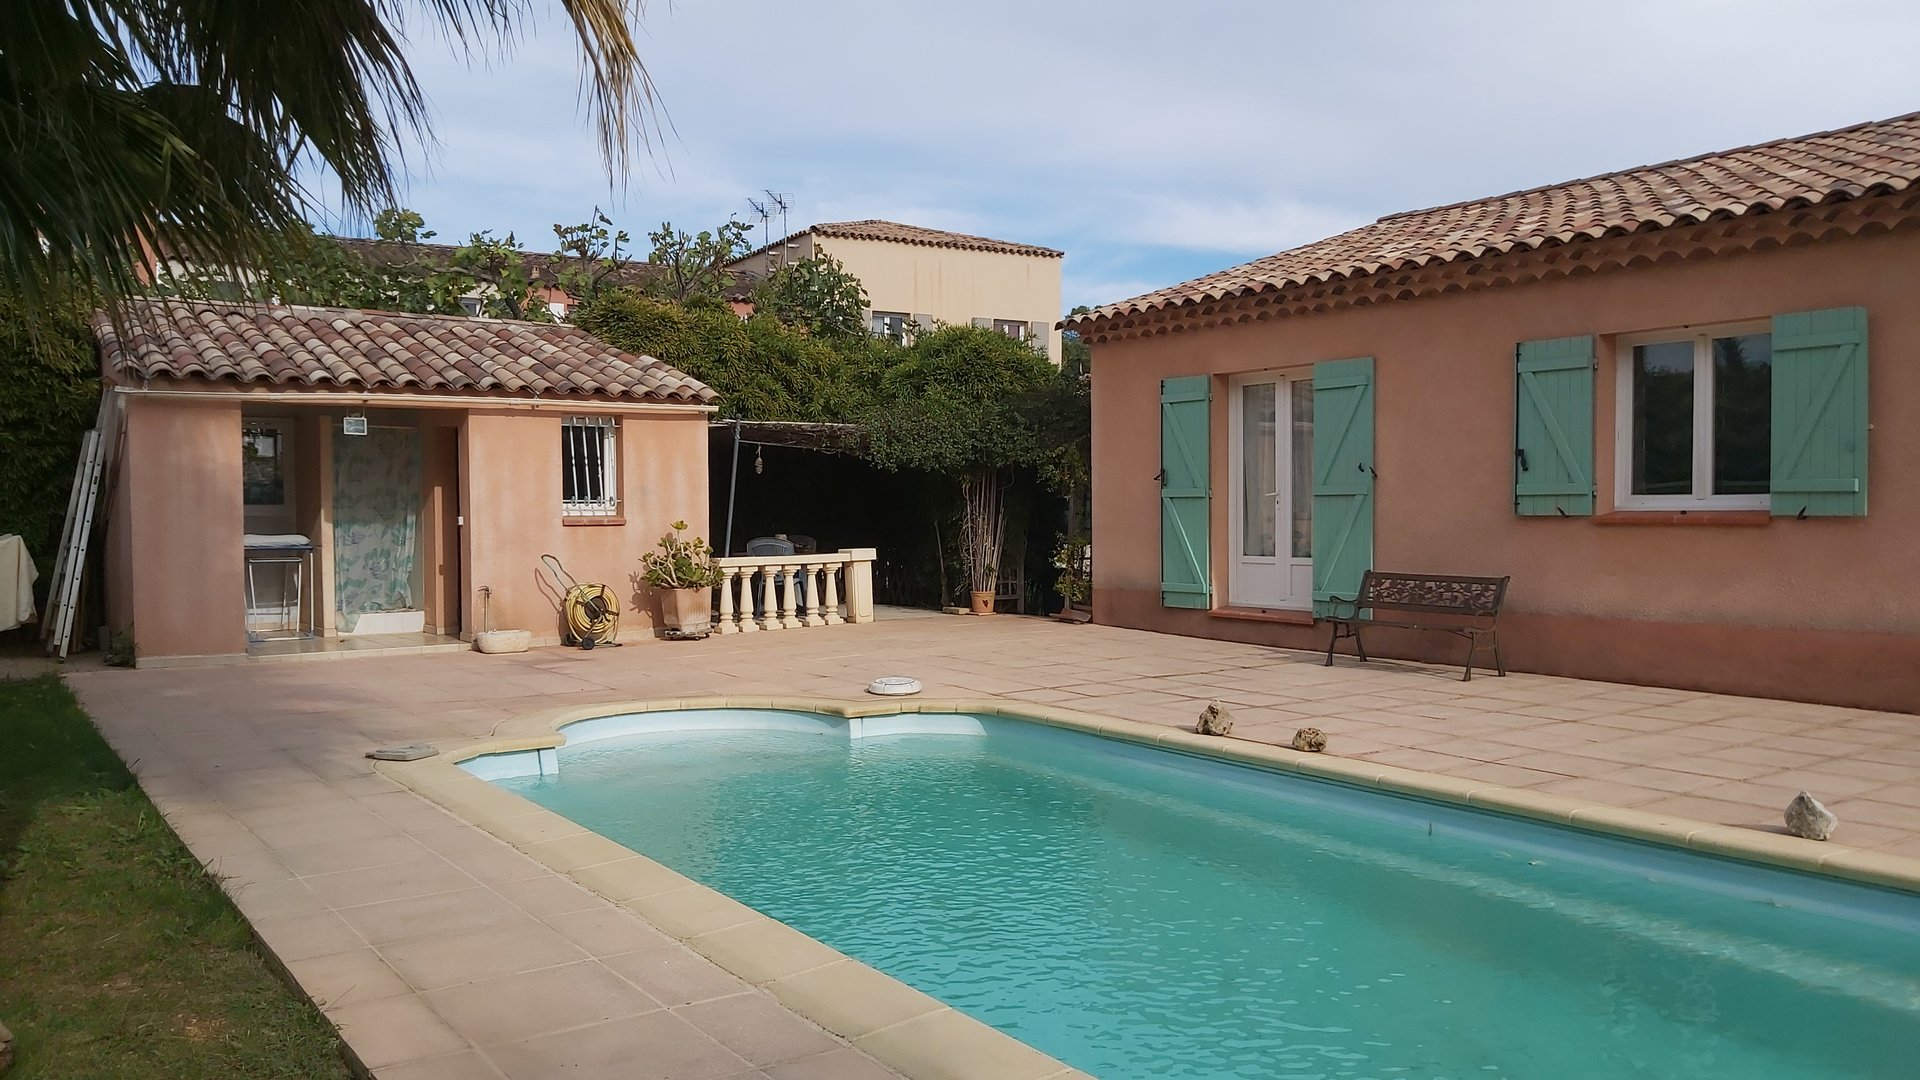 VILLA T4 GROUND FLOOR WITH SWIMMING POOL NEAR TGV STATION